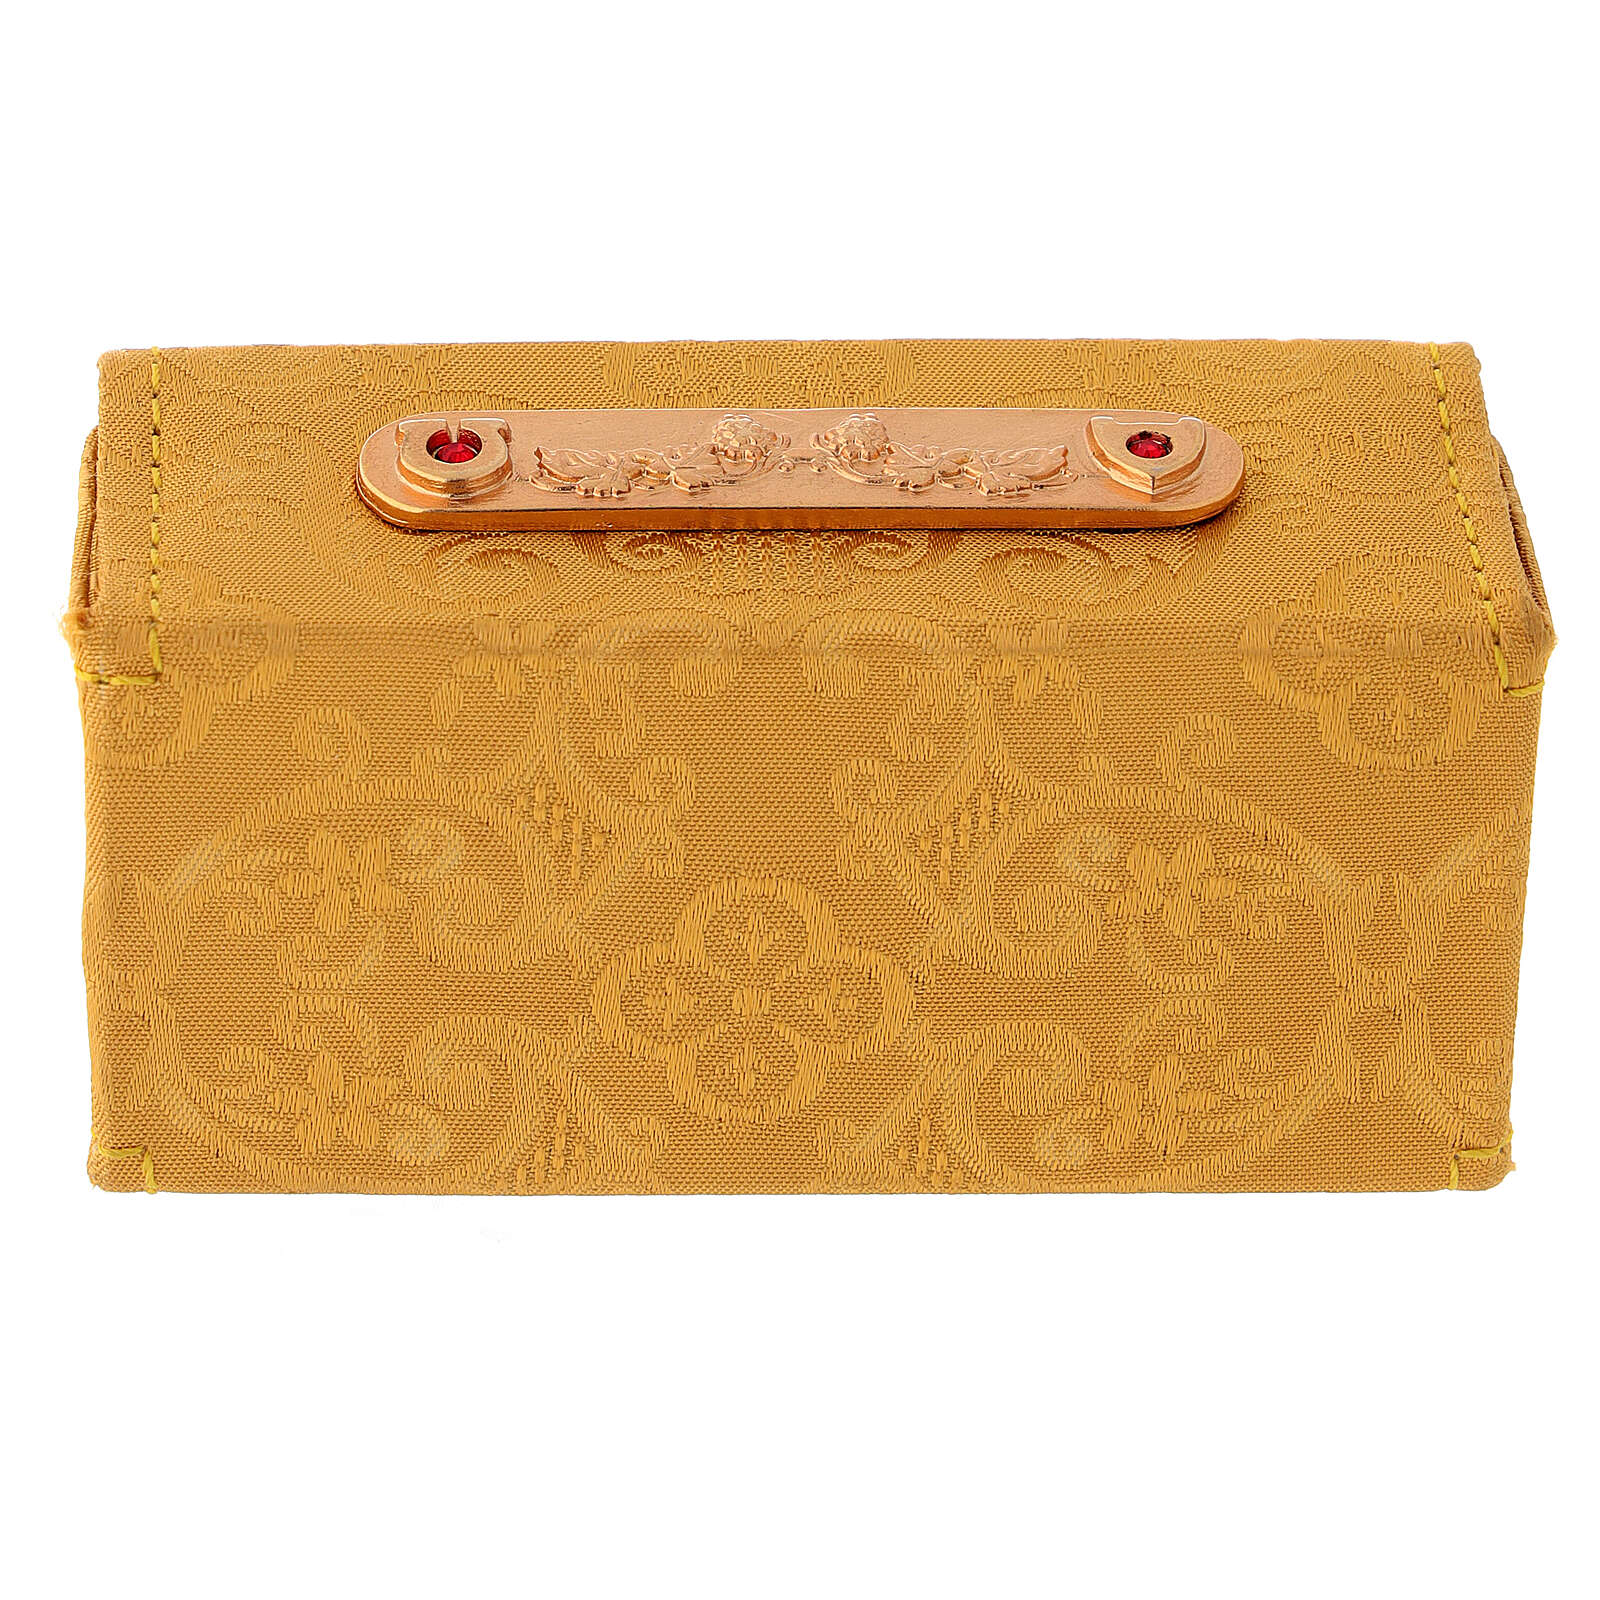 Hard case in golden Jacquard fabric with three Holy oil stocks 3